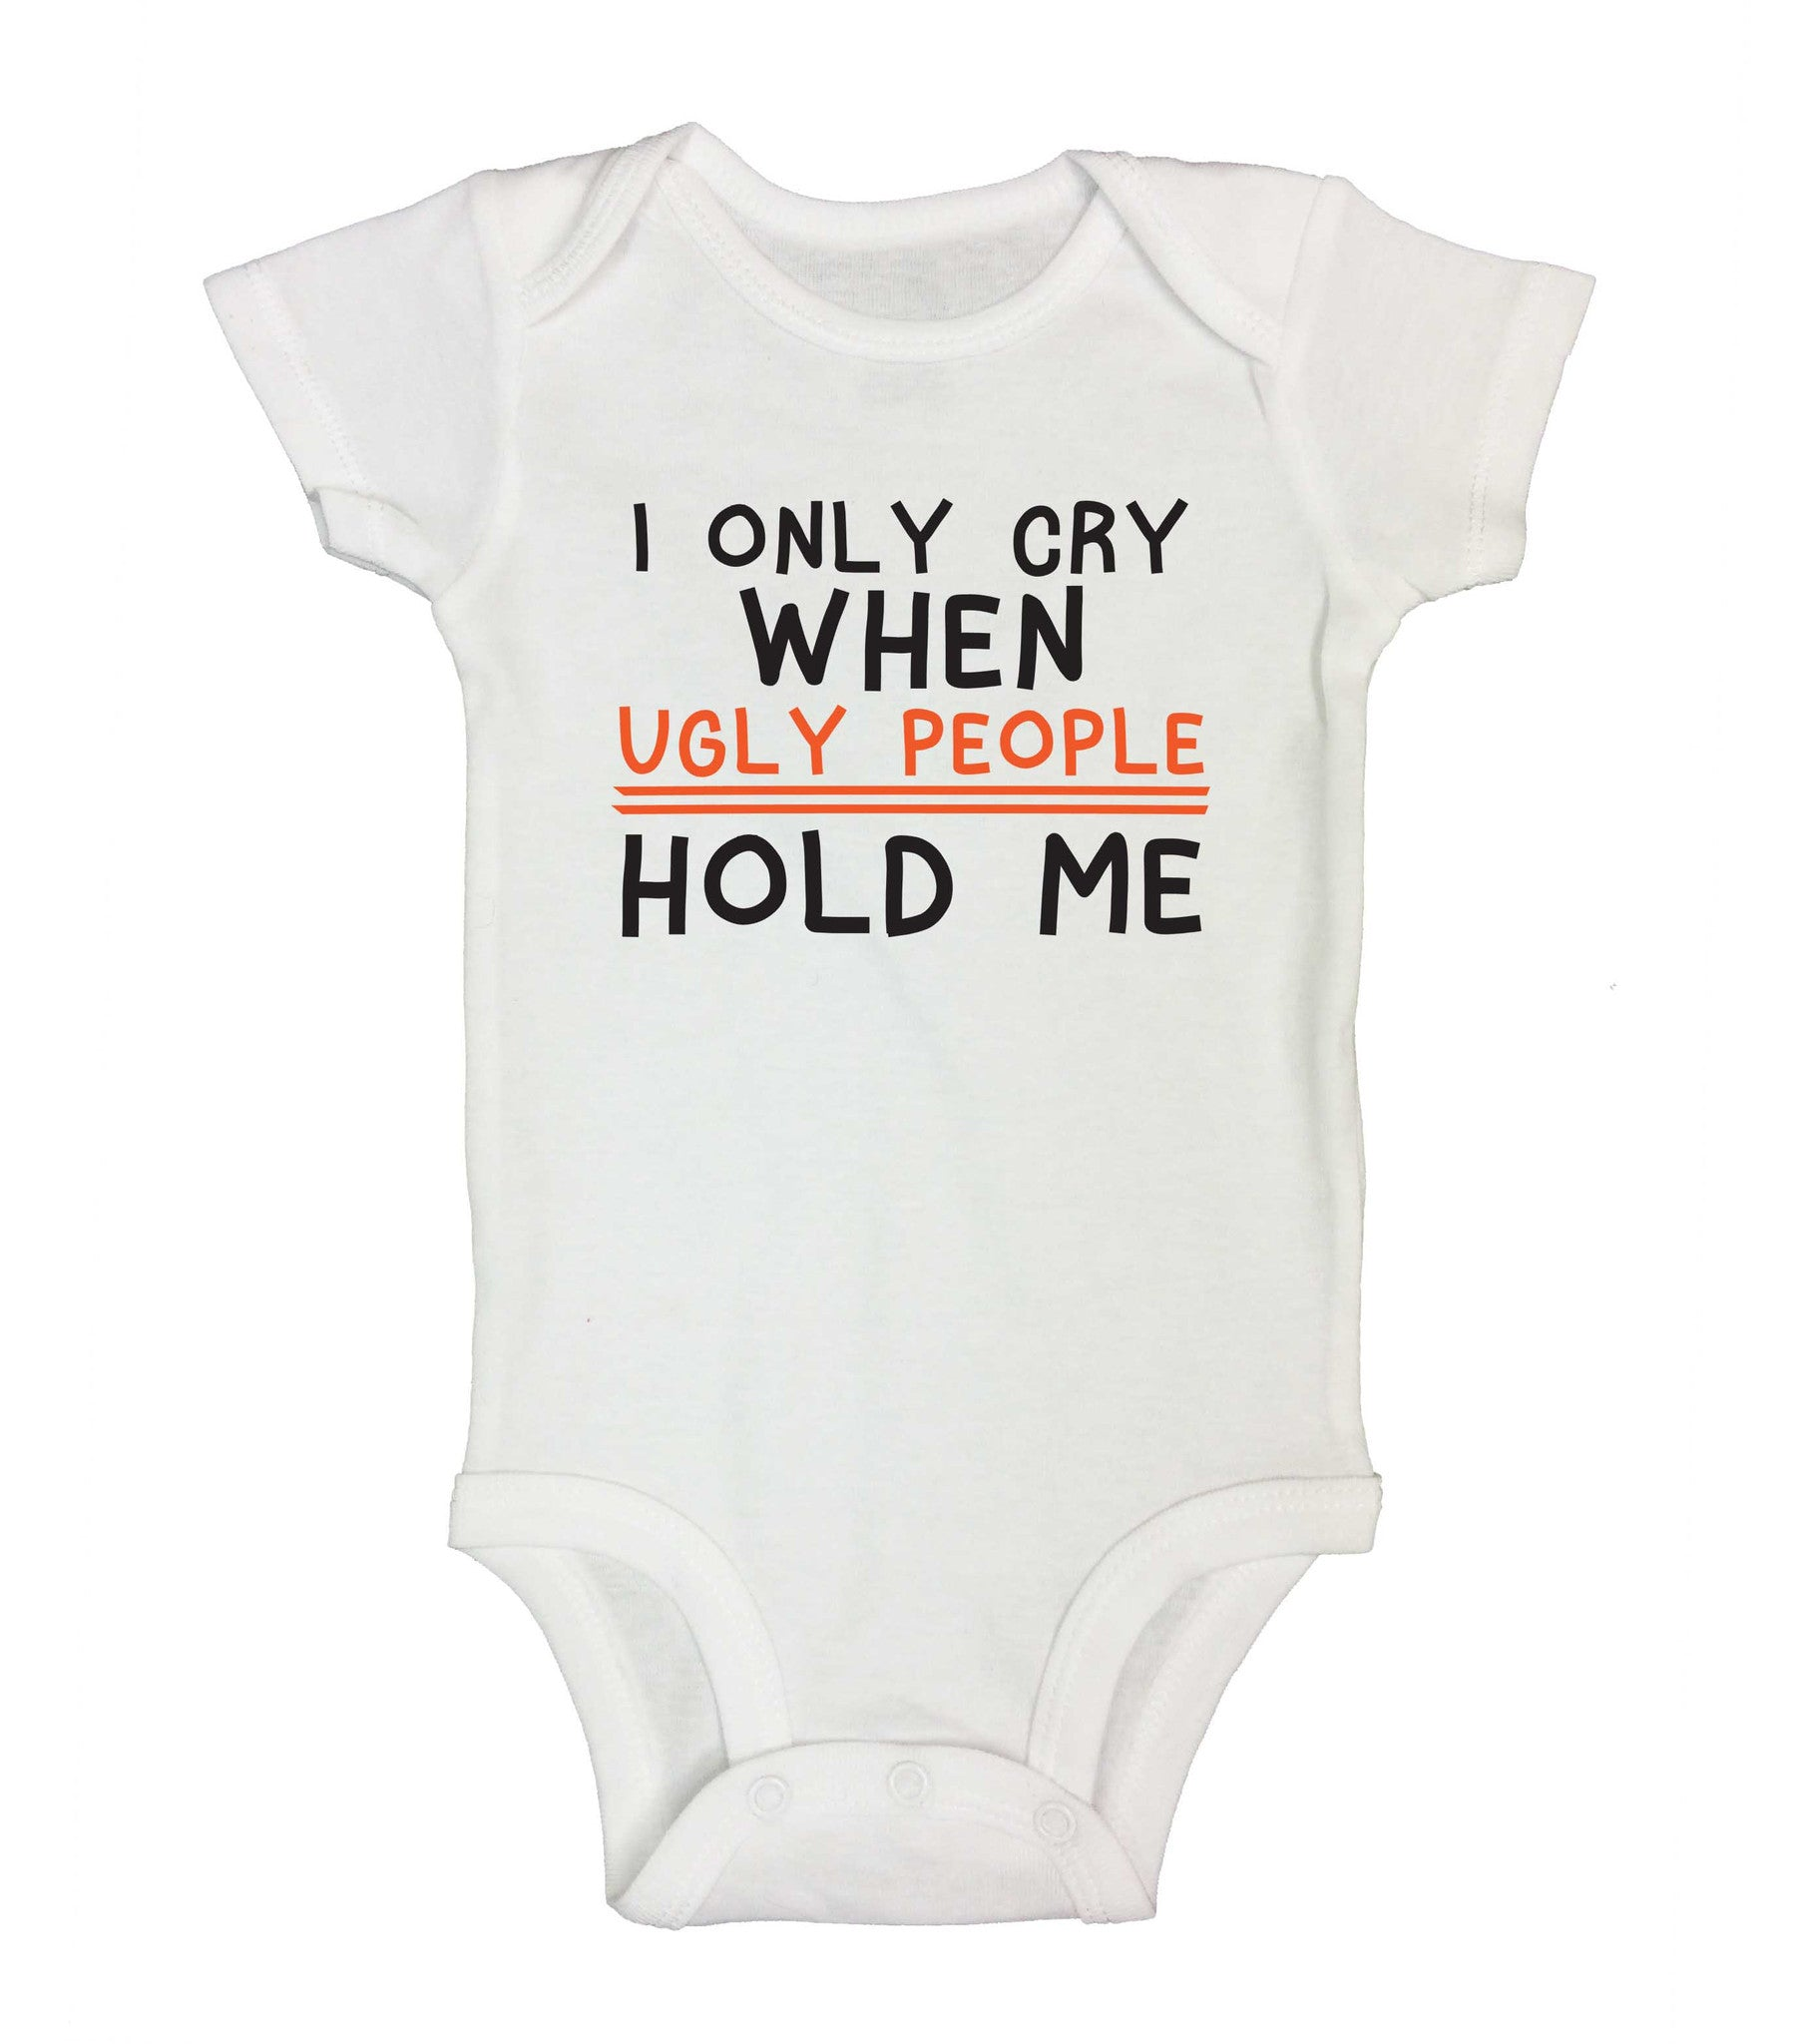 I Only Cry When Ugly People Hold Me Funny Kids Onesie - 177 - Funny Shirts Tank Tops Burnouts and Triblends  - 2